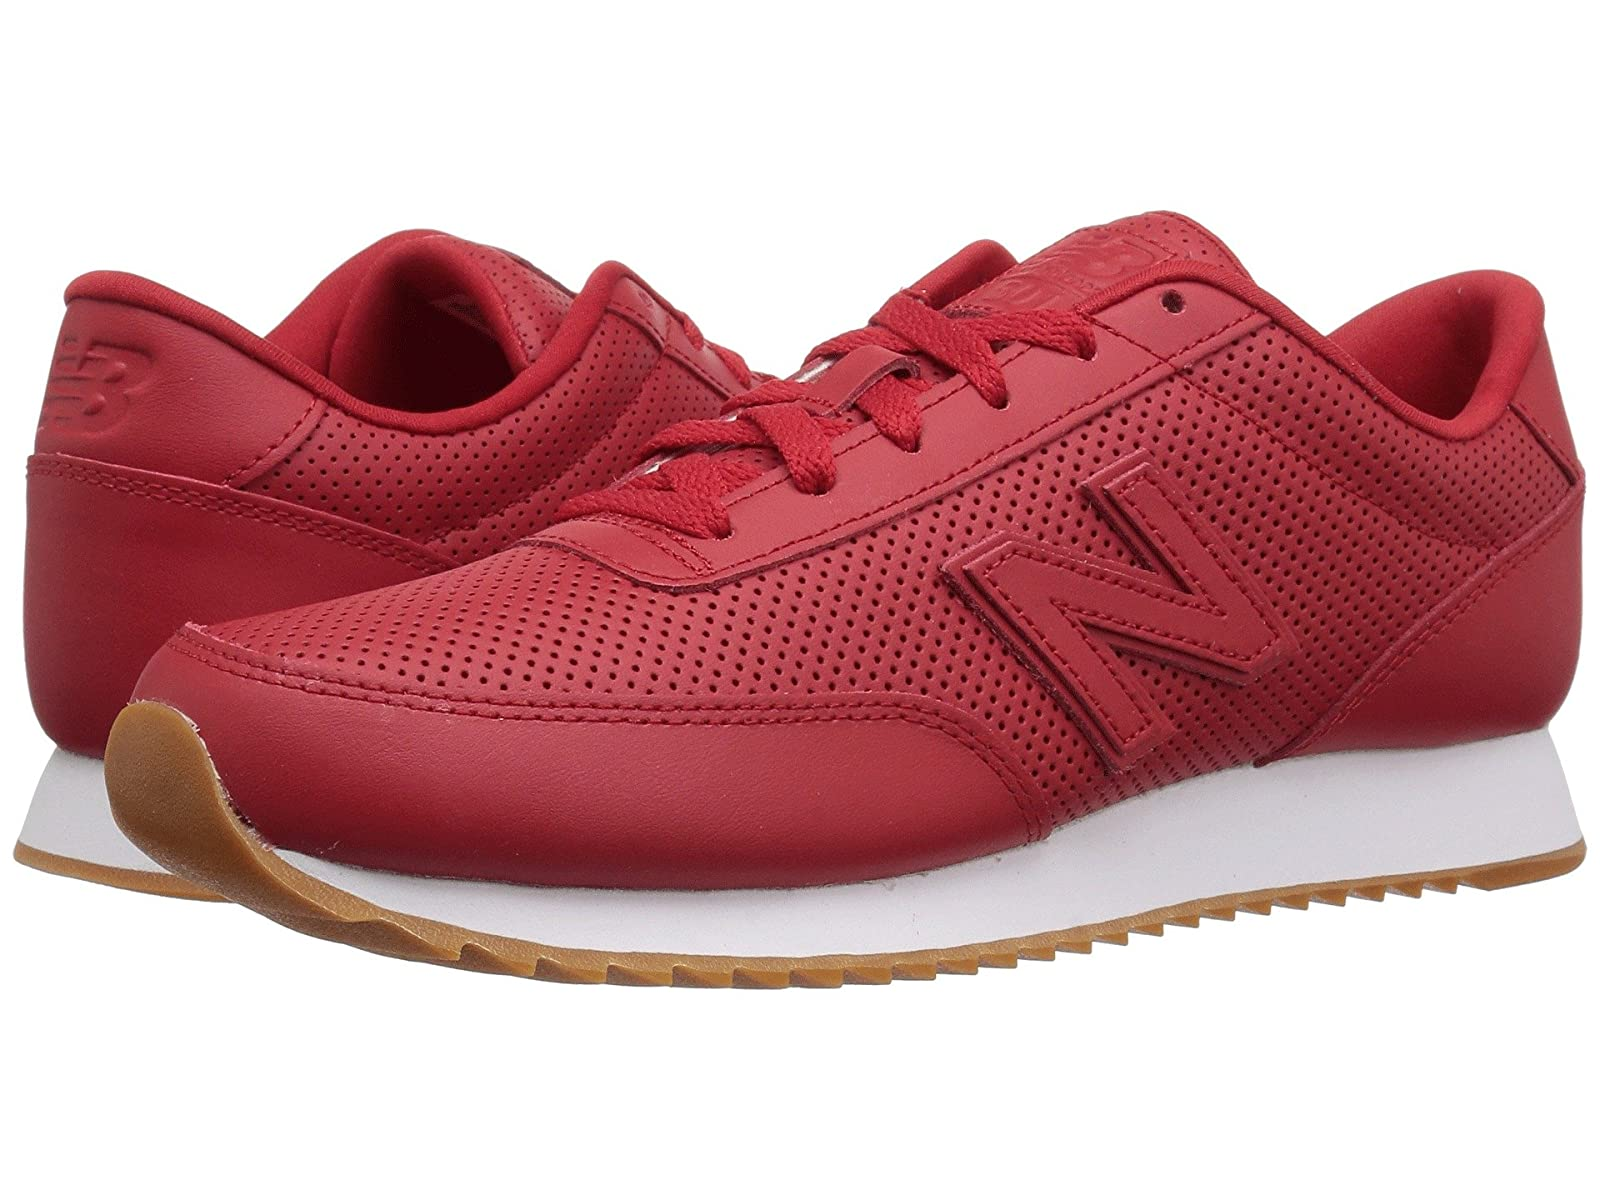 New Balance Classics MZ501Atmospheric grades have affordable shoes